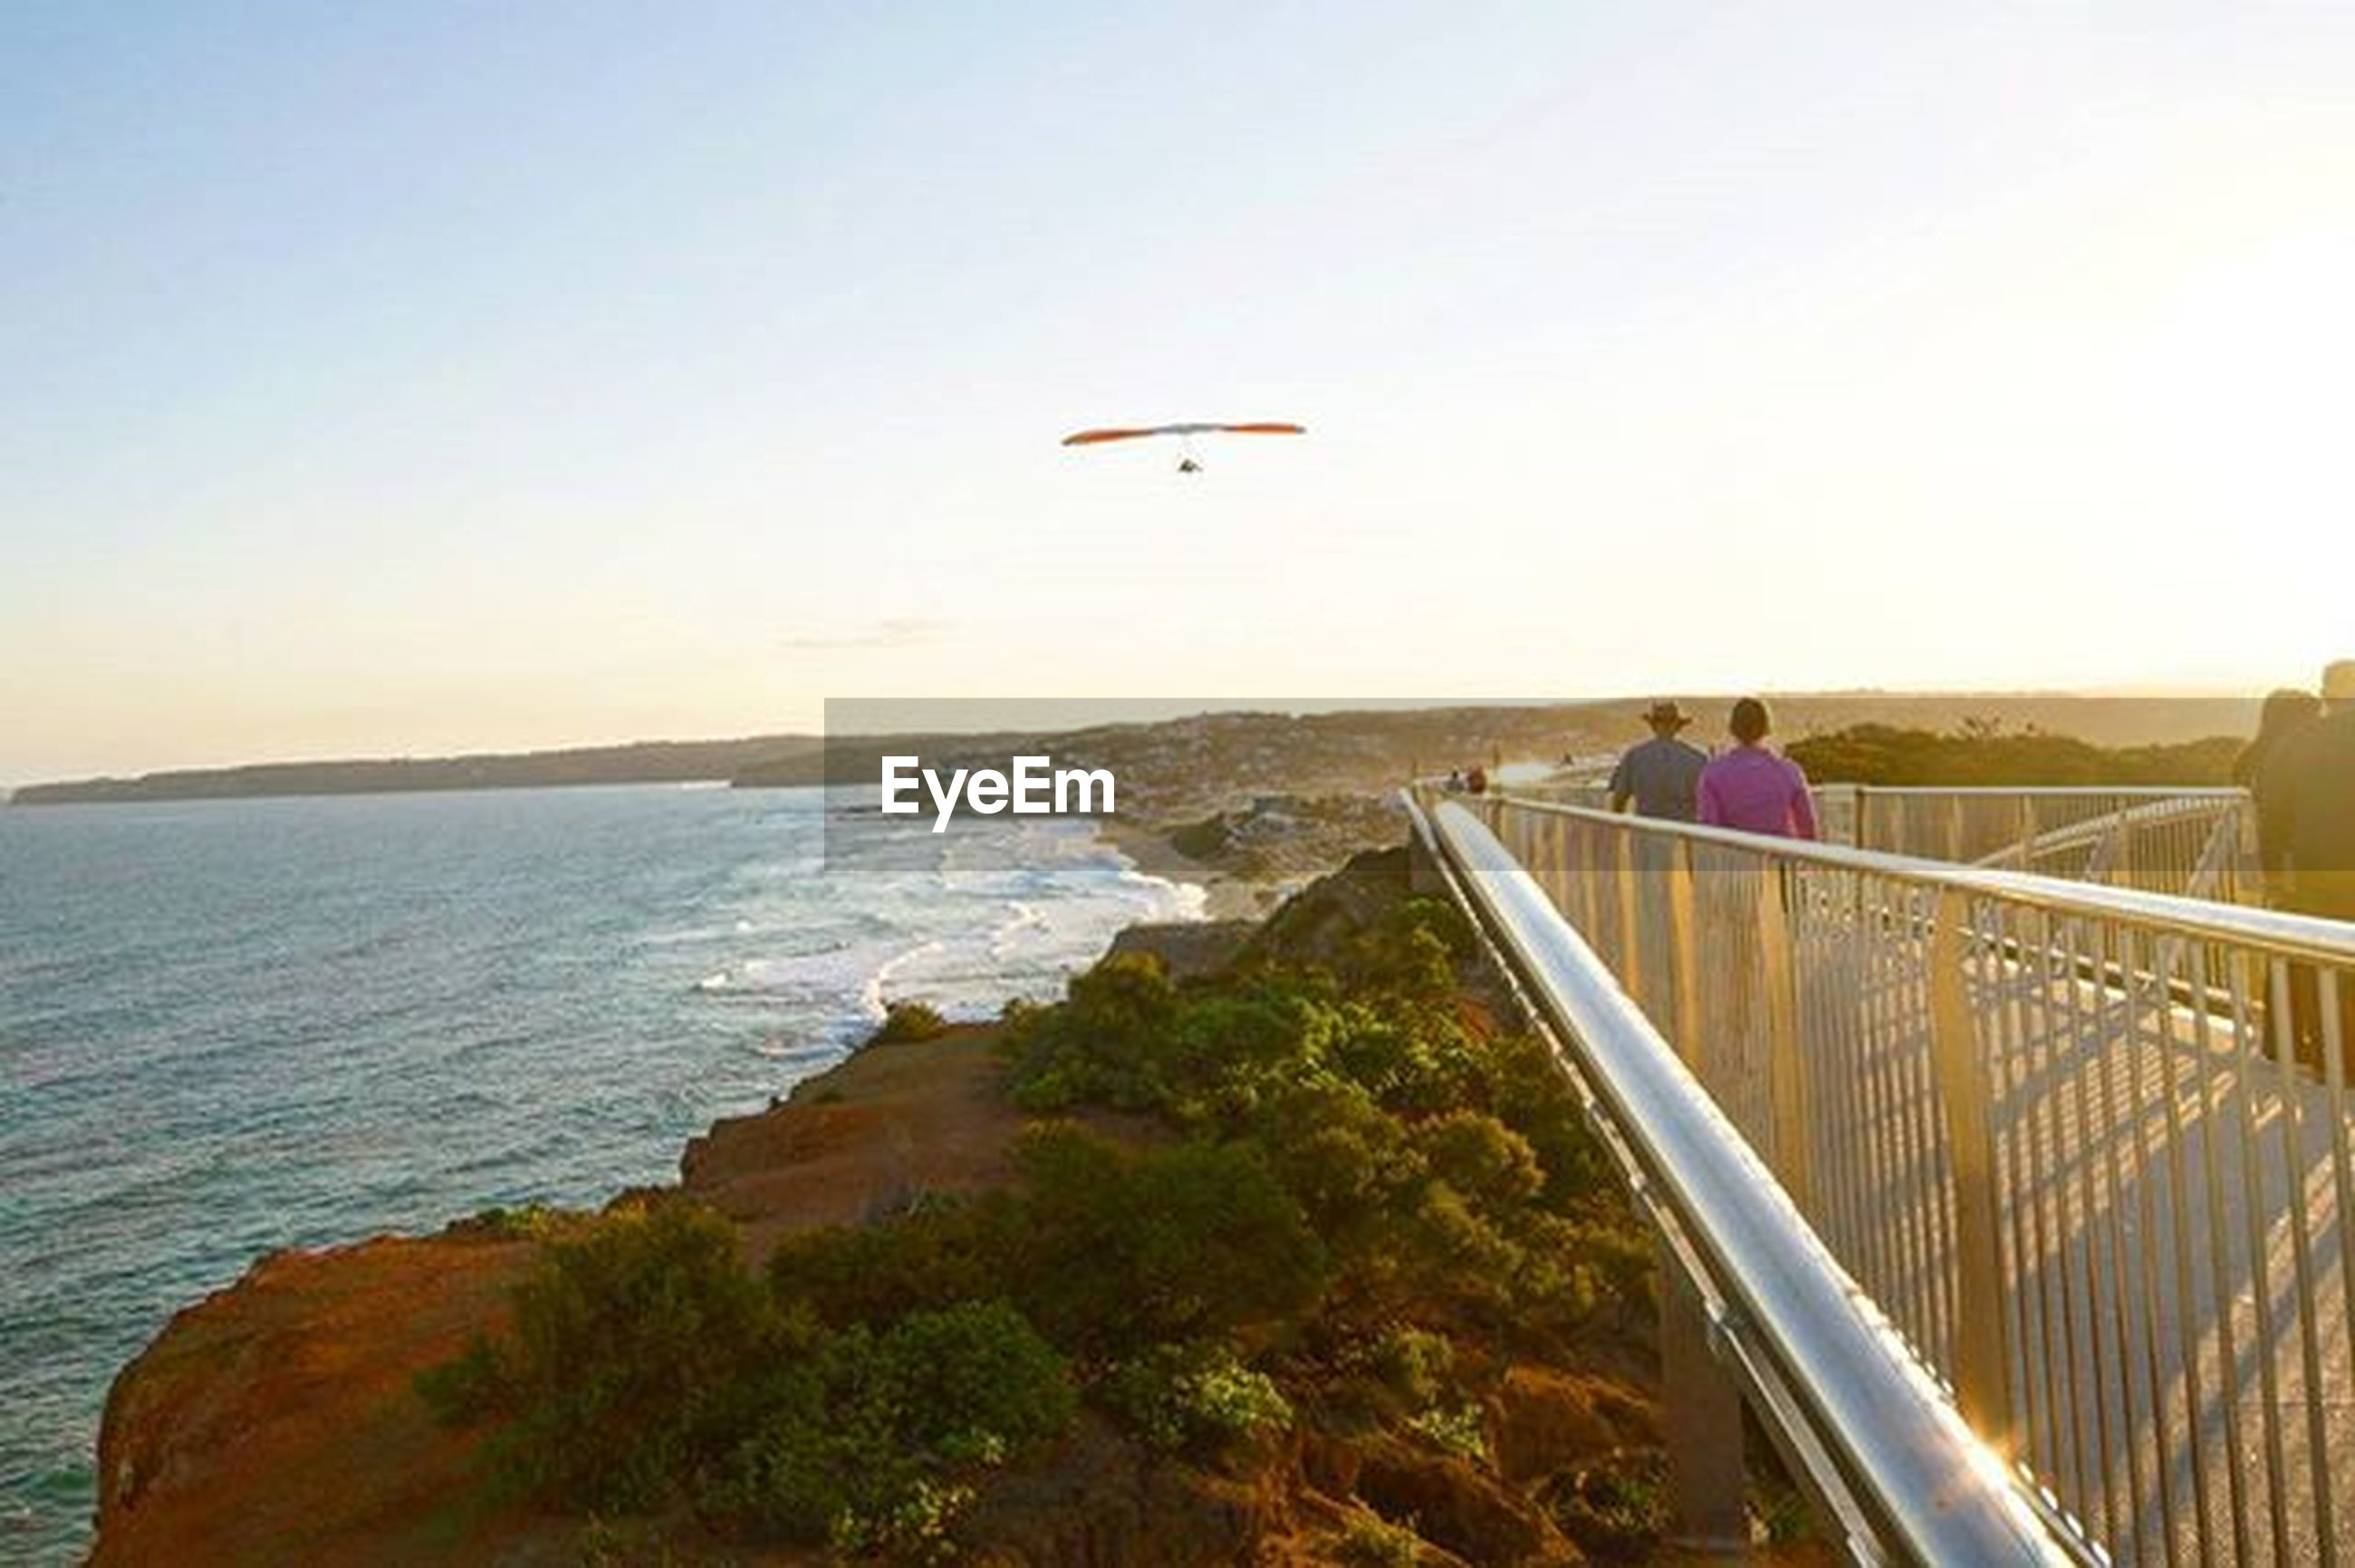 sea, clear sky, horizon over water, scenics, water, copy space, railing, tranquil scene, transportation, tranquility, beauty in nature, nature, leisure activity, mountain, men, lifestyles, sky, incidental people